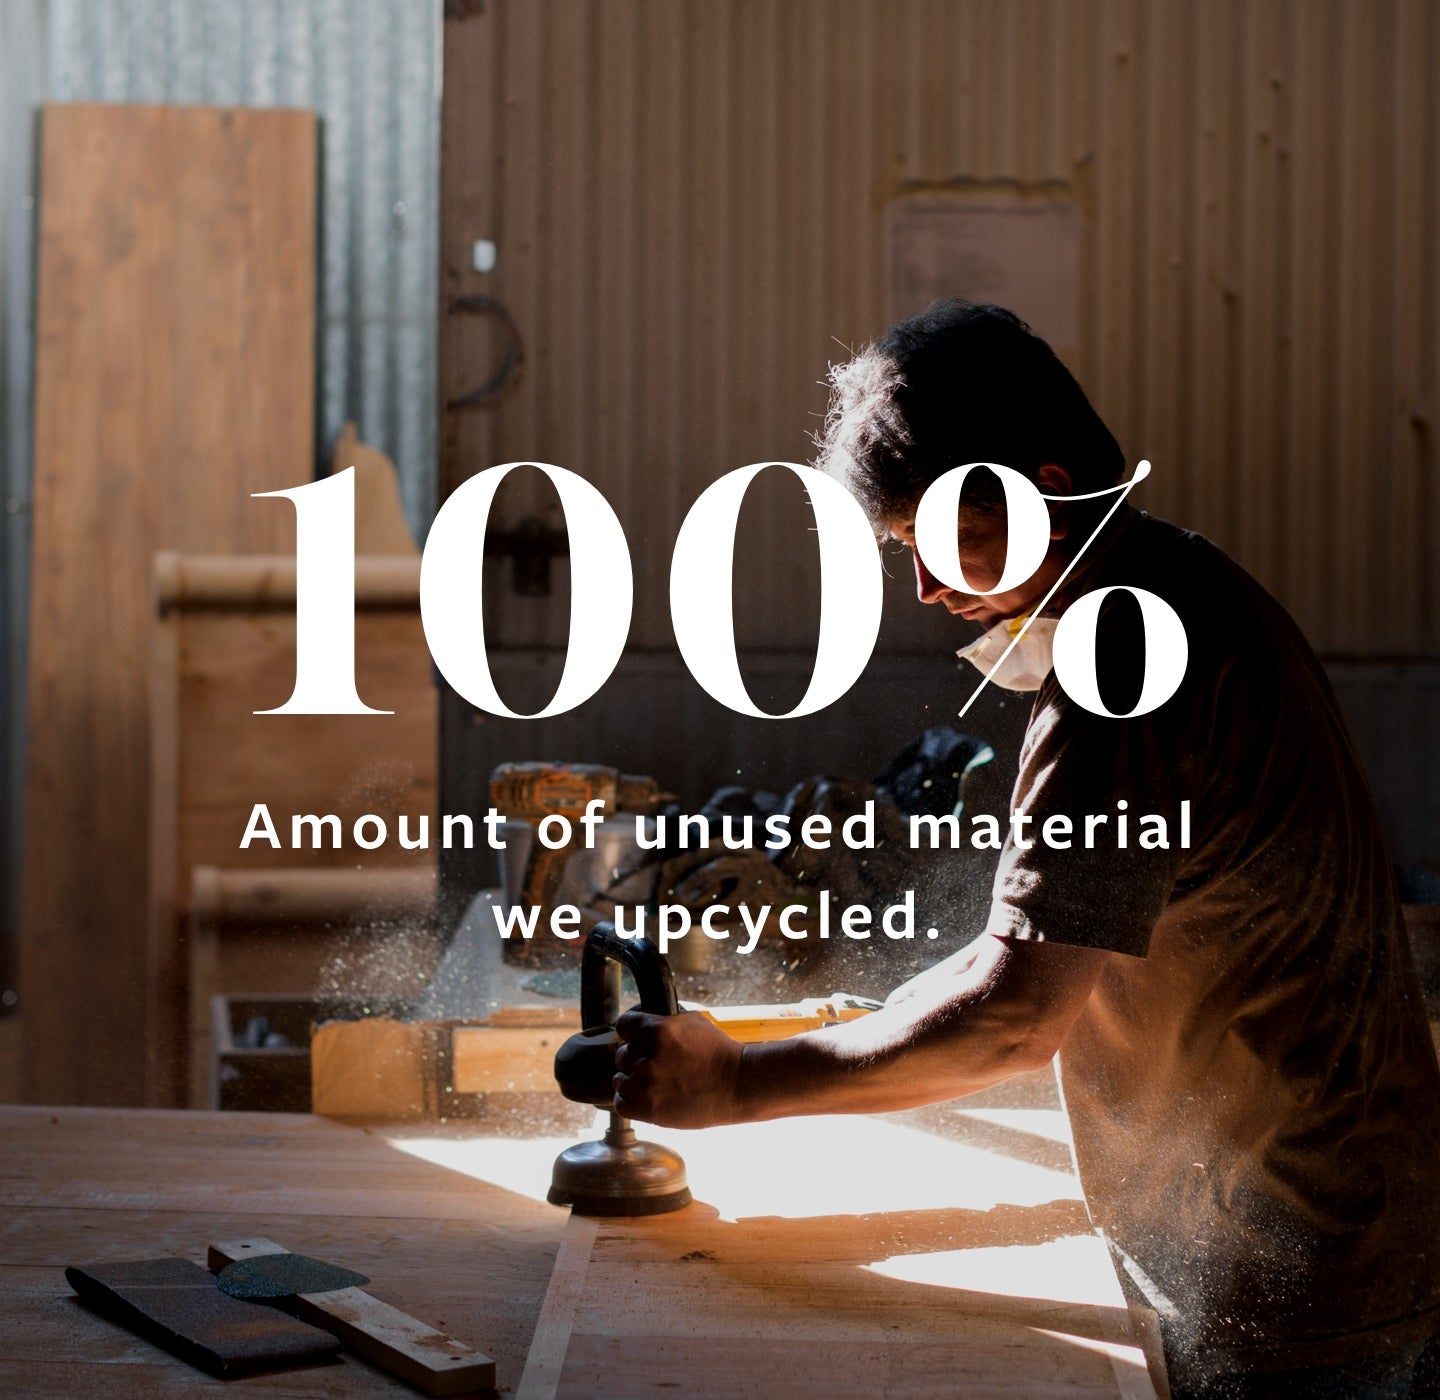 100 Percent of Unused Material We Upcycled